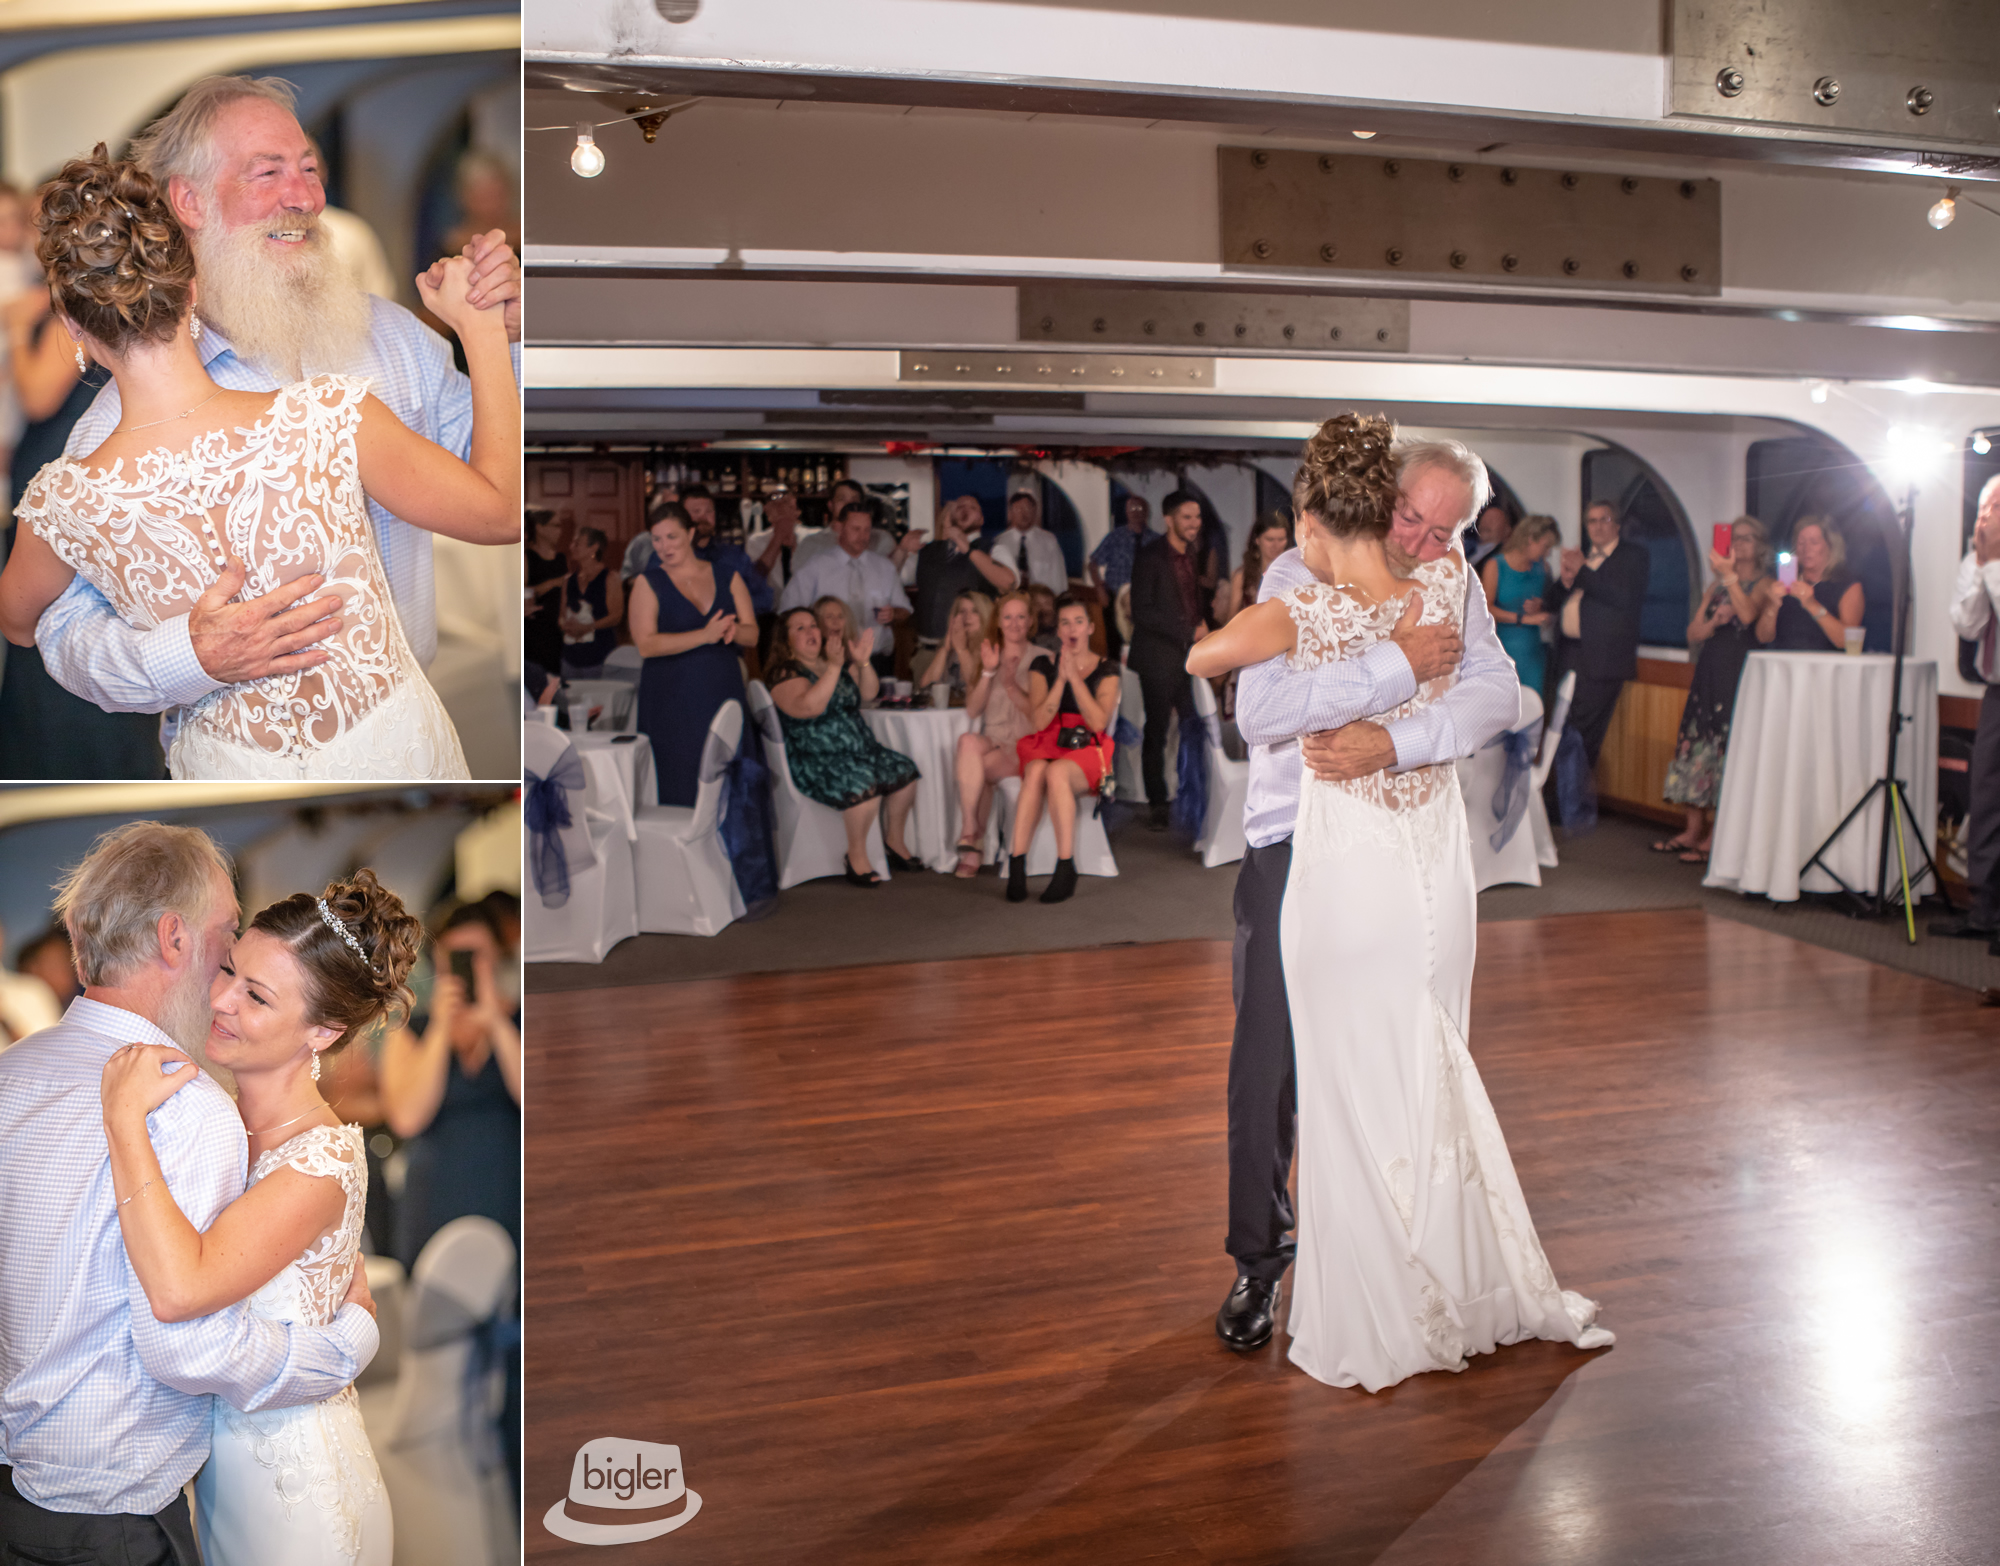 20180915_-_26_-_Becca_and_Doug_Lake_George_Wedding